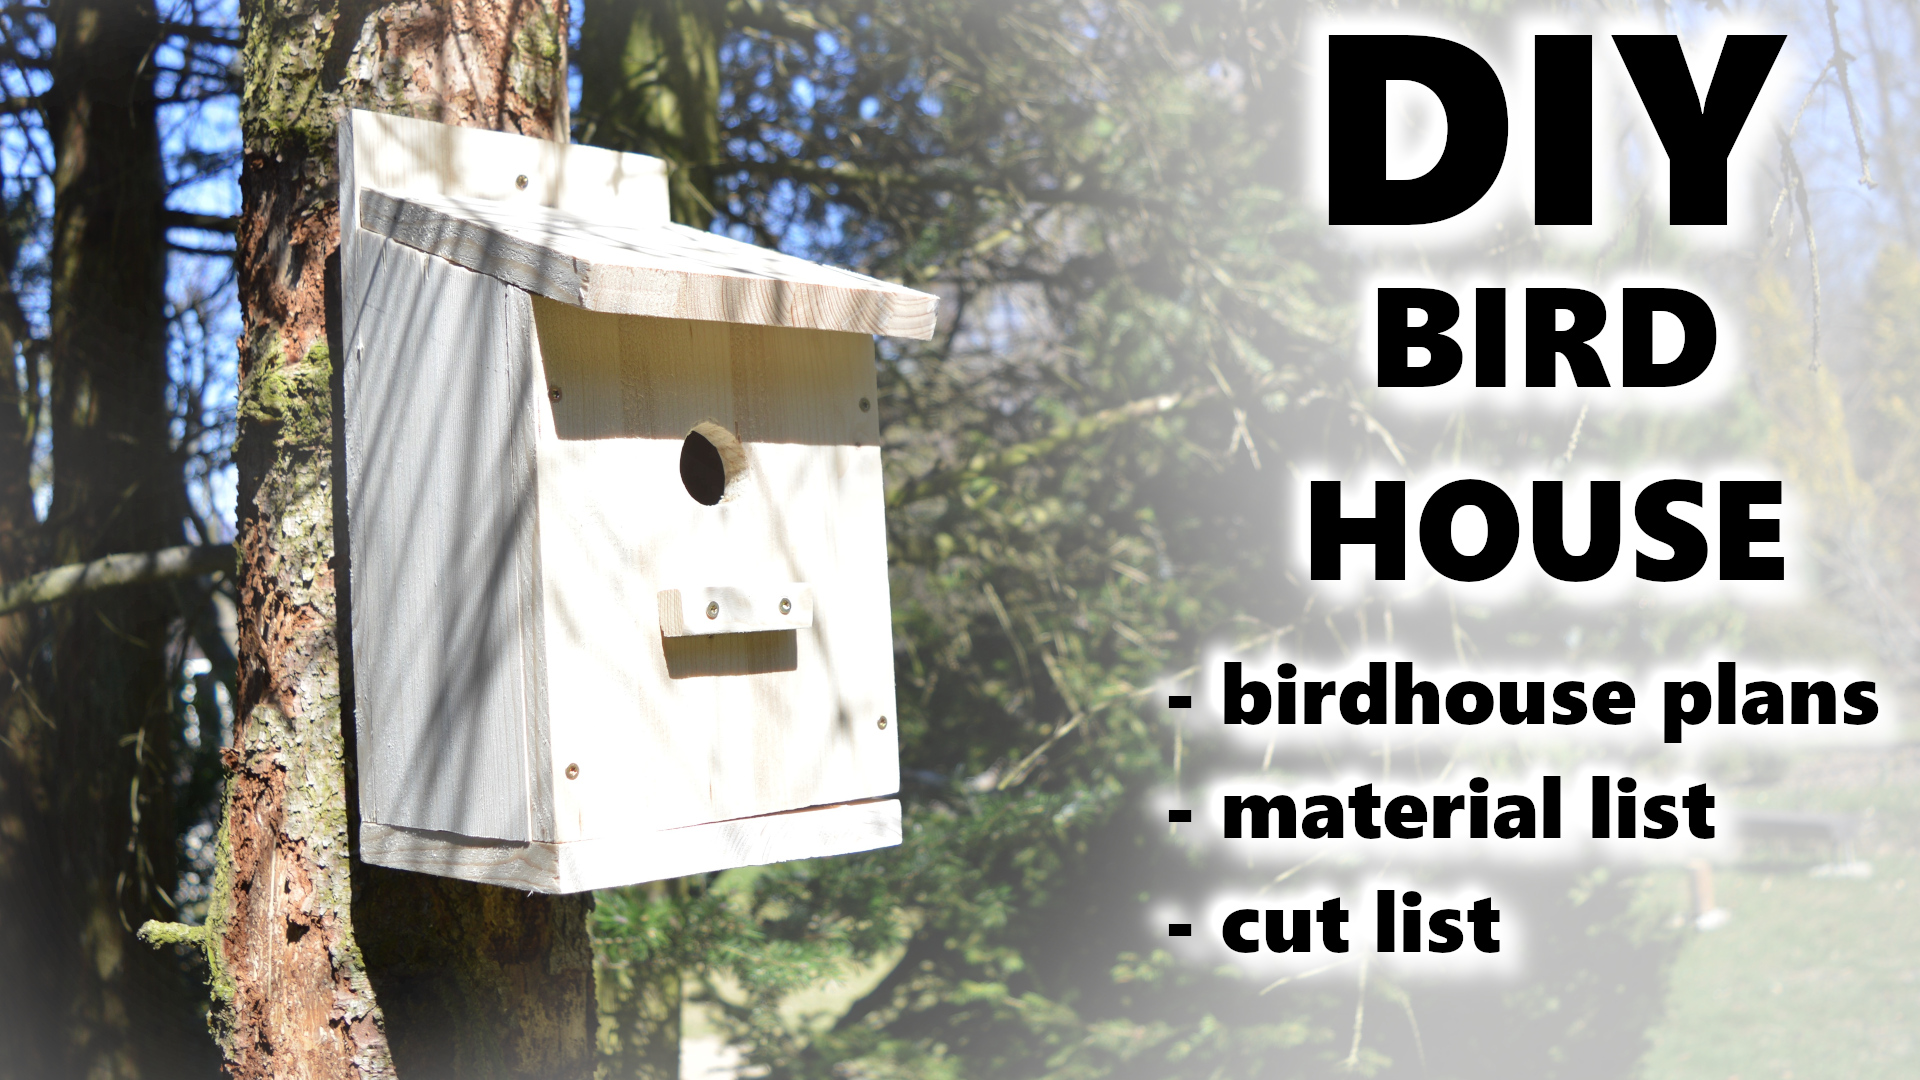 Building a Birdhouse | How to build a bird house